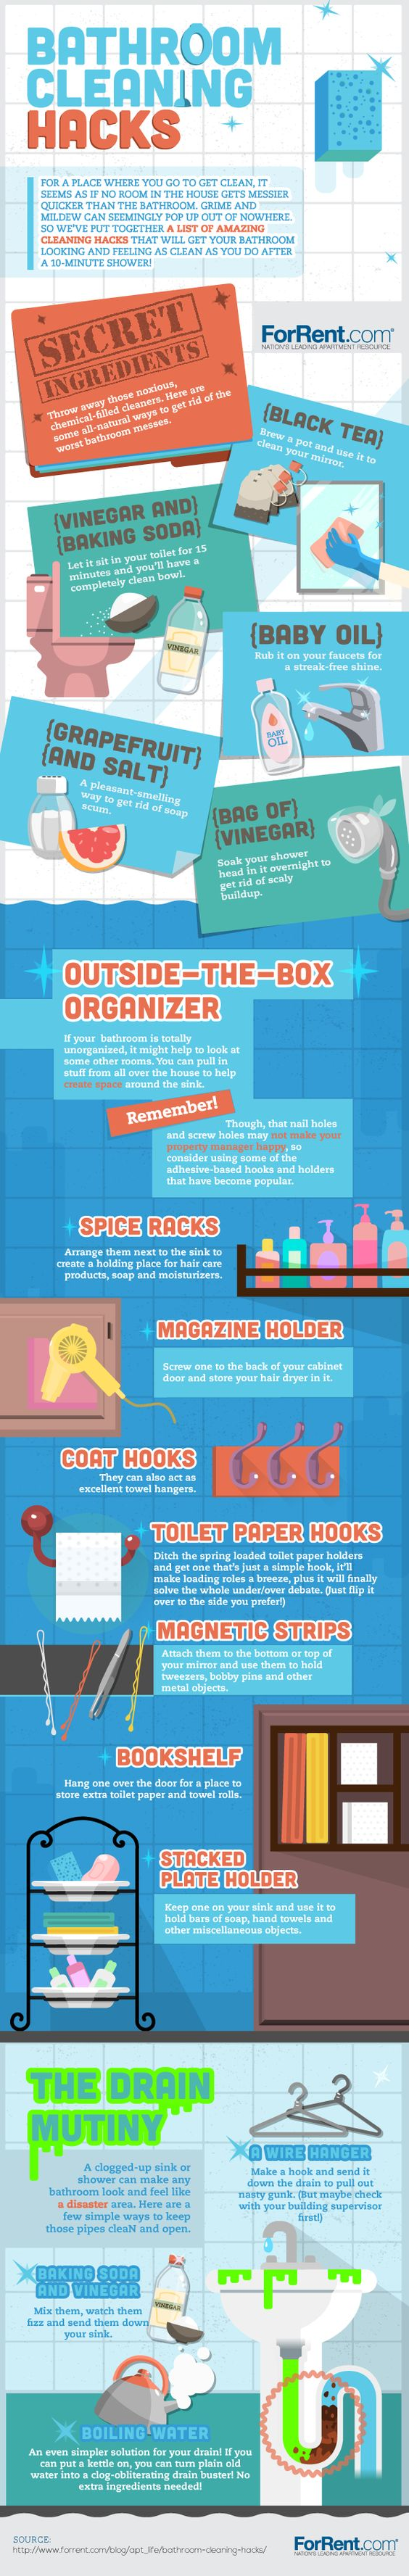 Bathroom cleaning hacks to help you make your bathroom squeaky clean!: